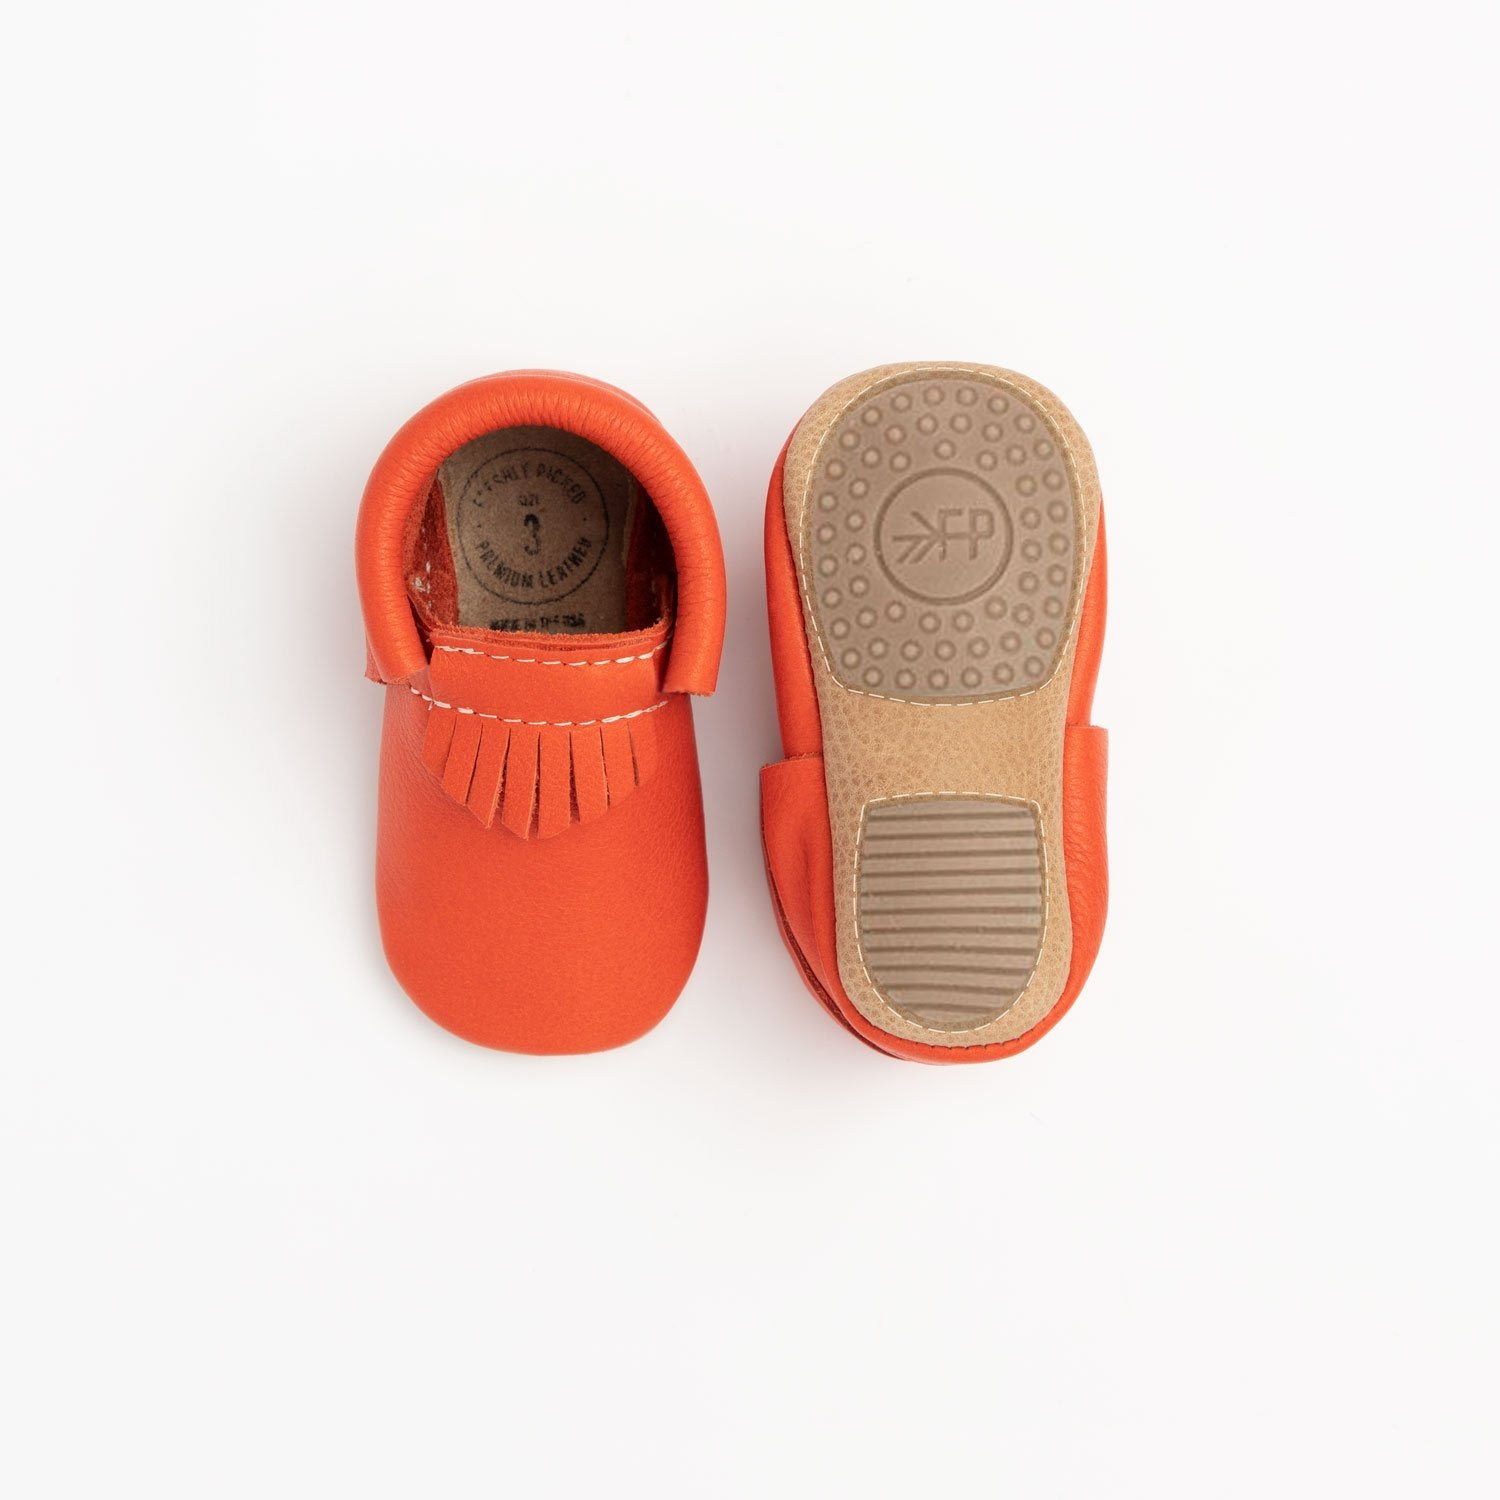 Maple City Mocc Mini Sole Mini Sole City Mocc mini soles